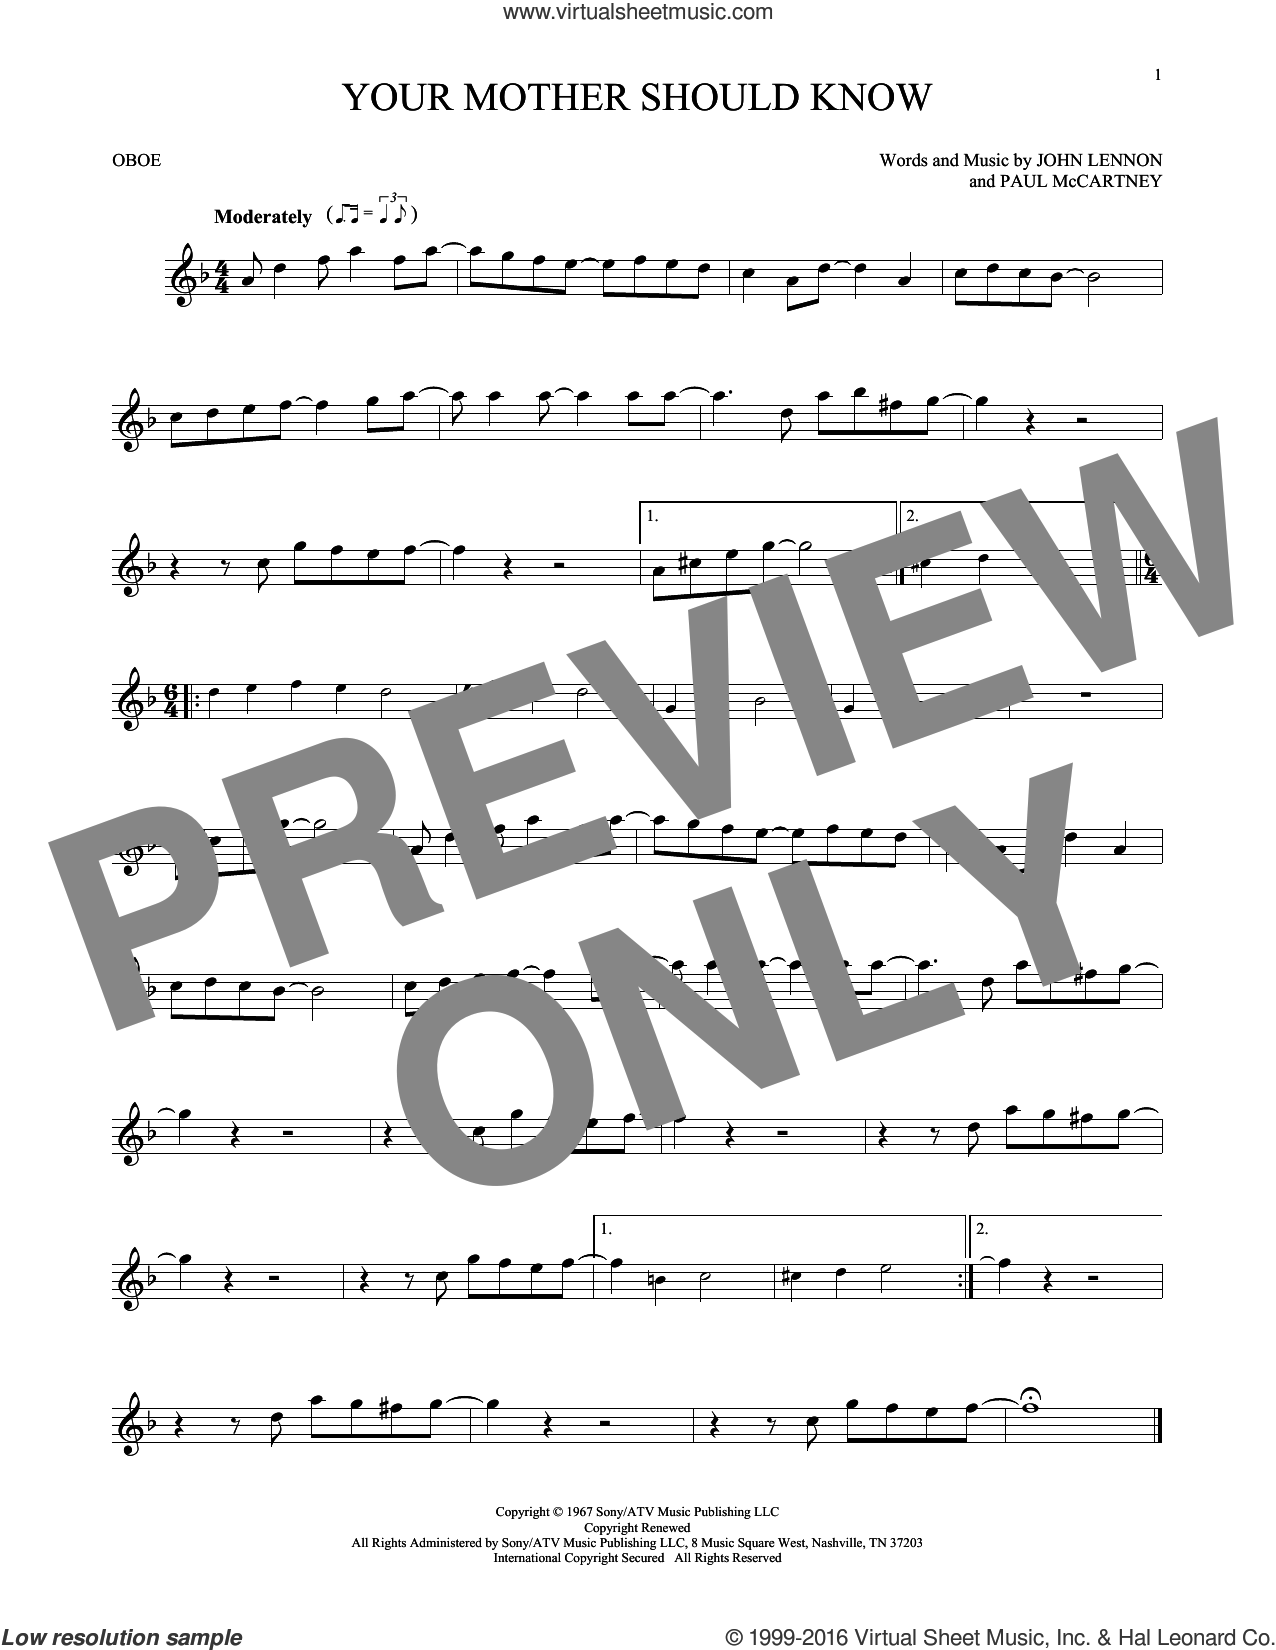 Your Mother Should Know sheet music for oboe solo by The Beatles, John Lennon and Paul McCartney, intermediate skill level